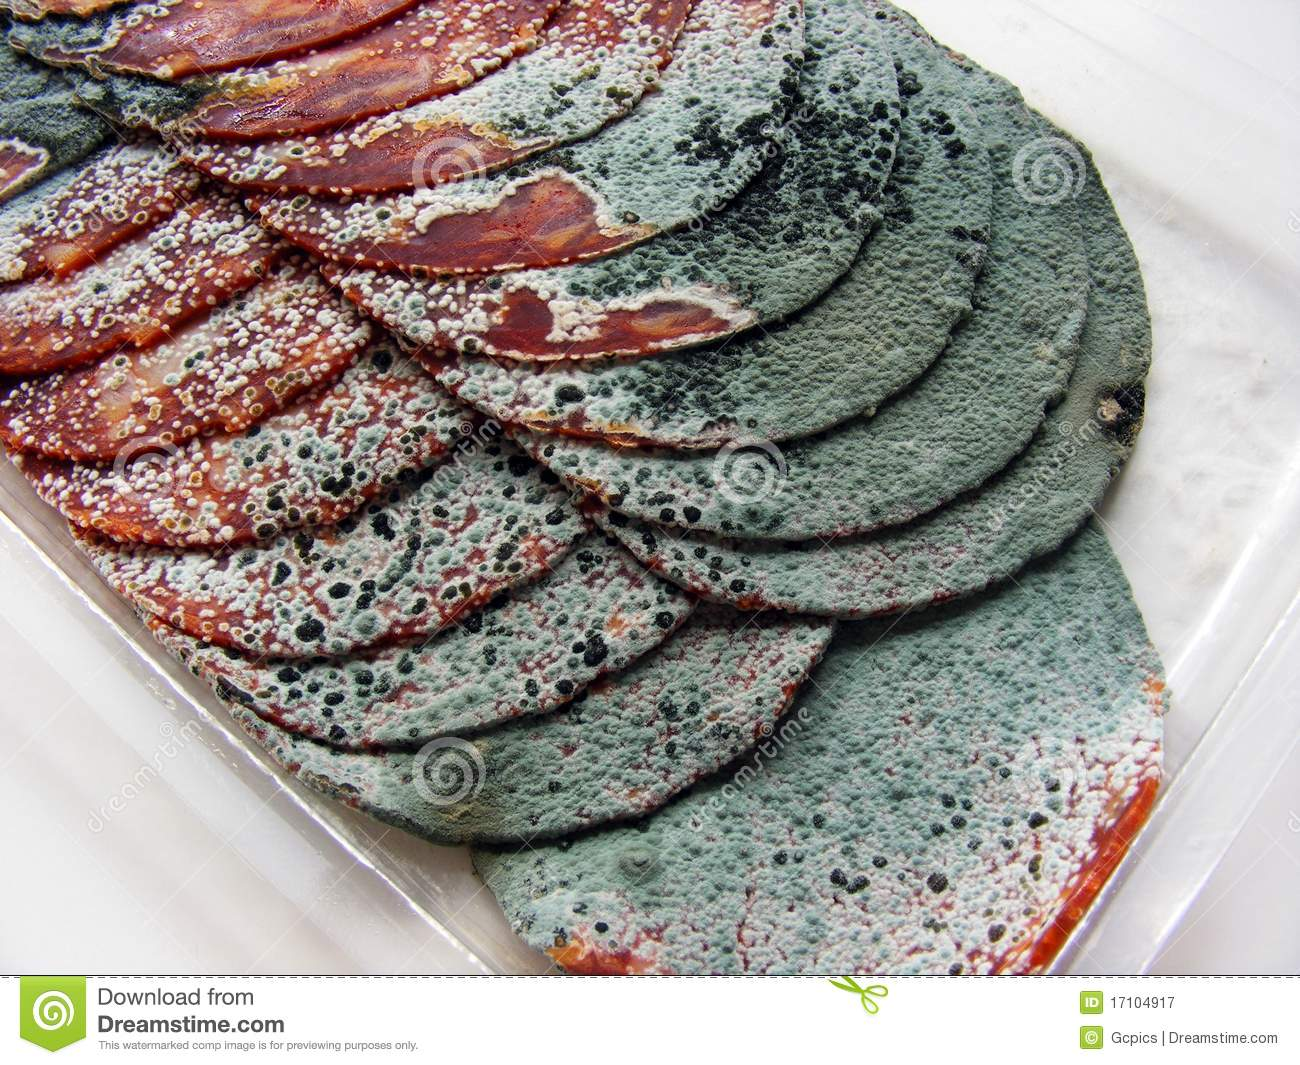 Rotten Meat In Slices Royalty Free Stock Photography ...